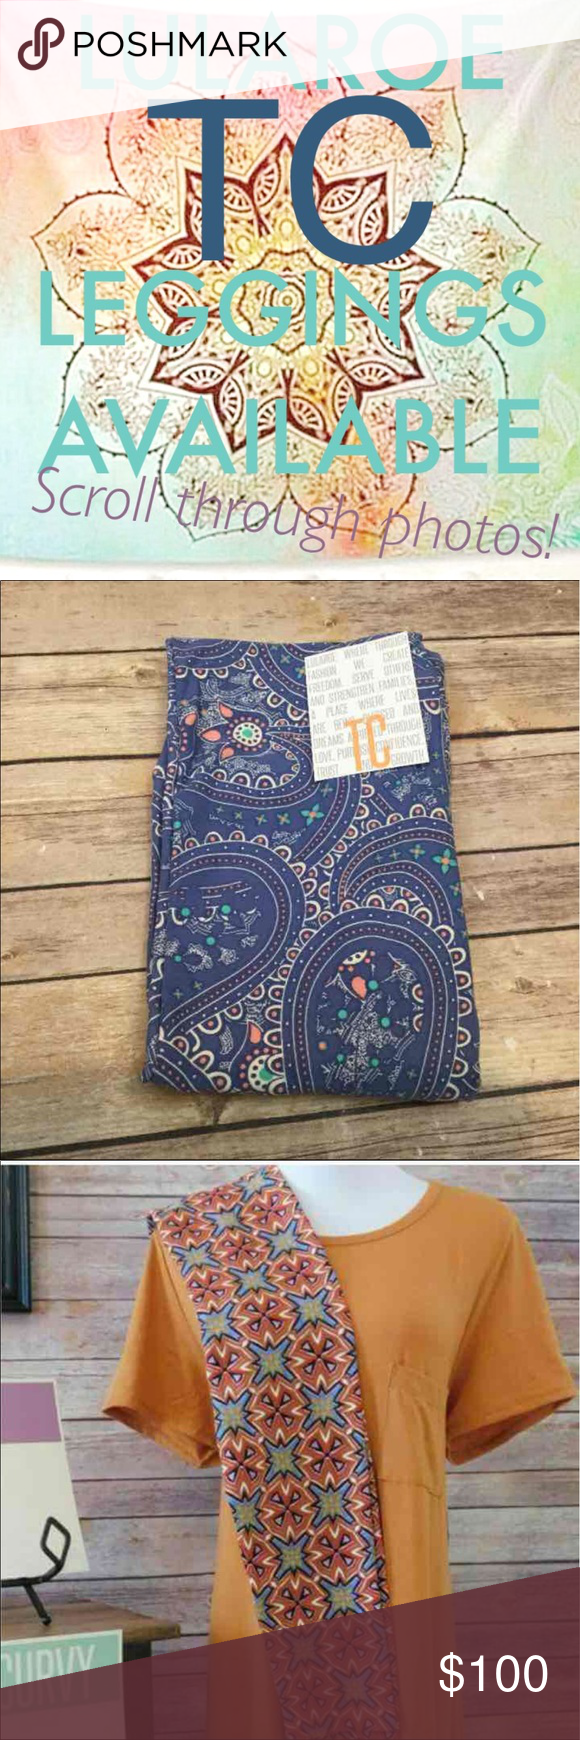 LuLaRoe TC LEGGINGS All listed are TC (Tall and Curvy) and available. Please ask for more info about specific pairs if you're interested.                DO NOT BUY LISTING. WILL BE CANCELLED LuLaRoe Pants Leggings